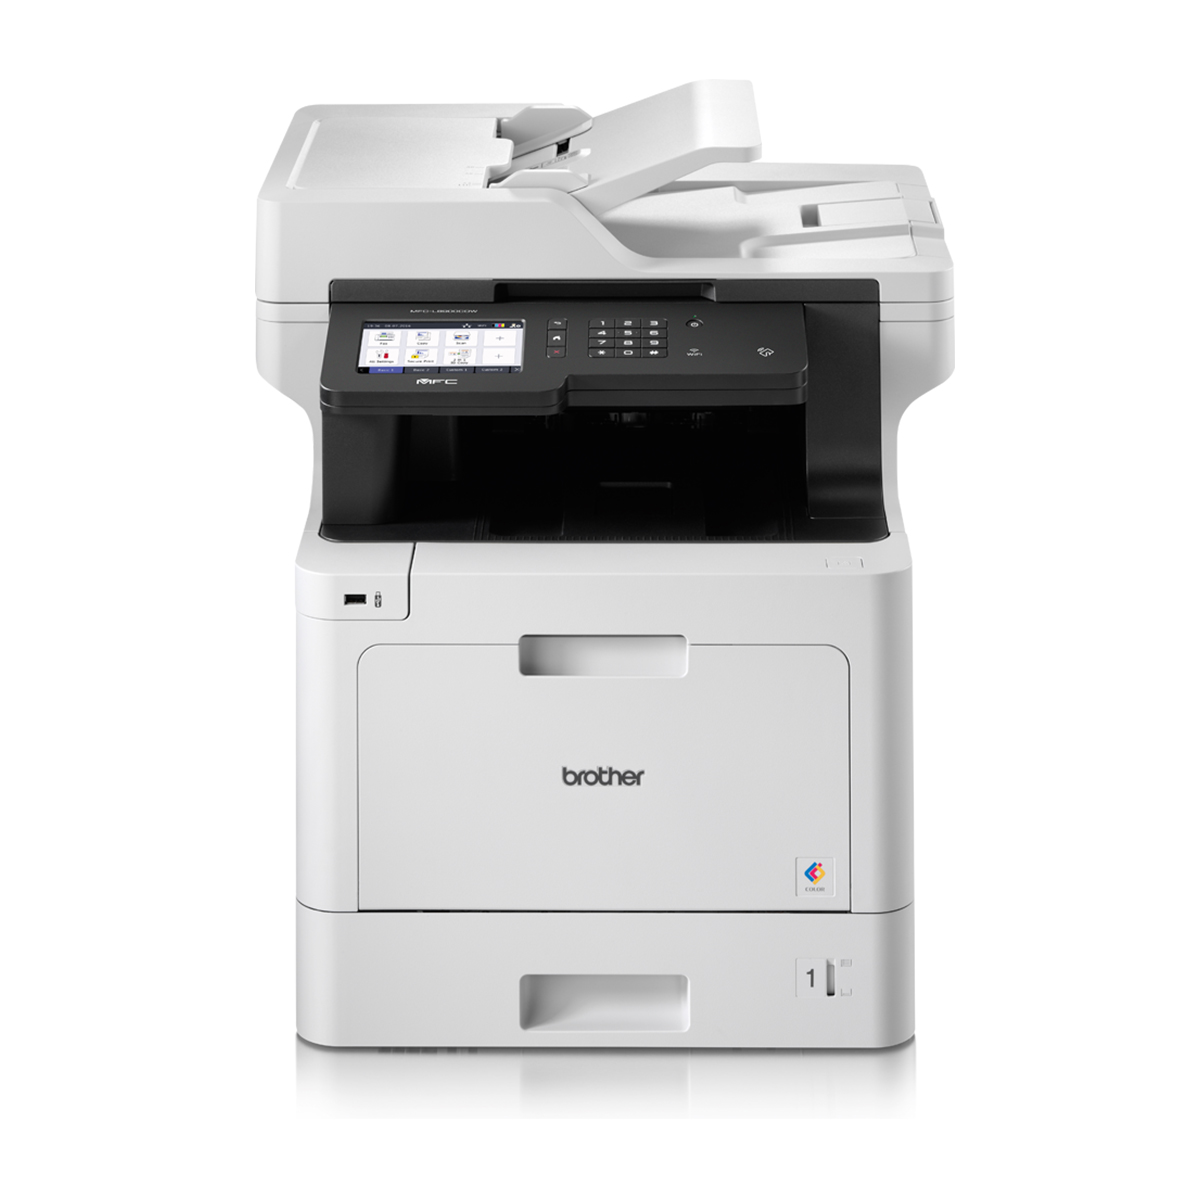 Brother MFC-L8900CDW A Grade - Refurbished Machine